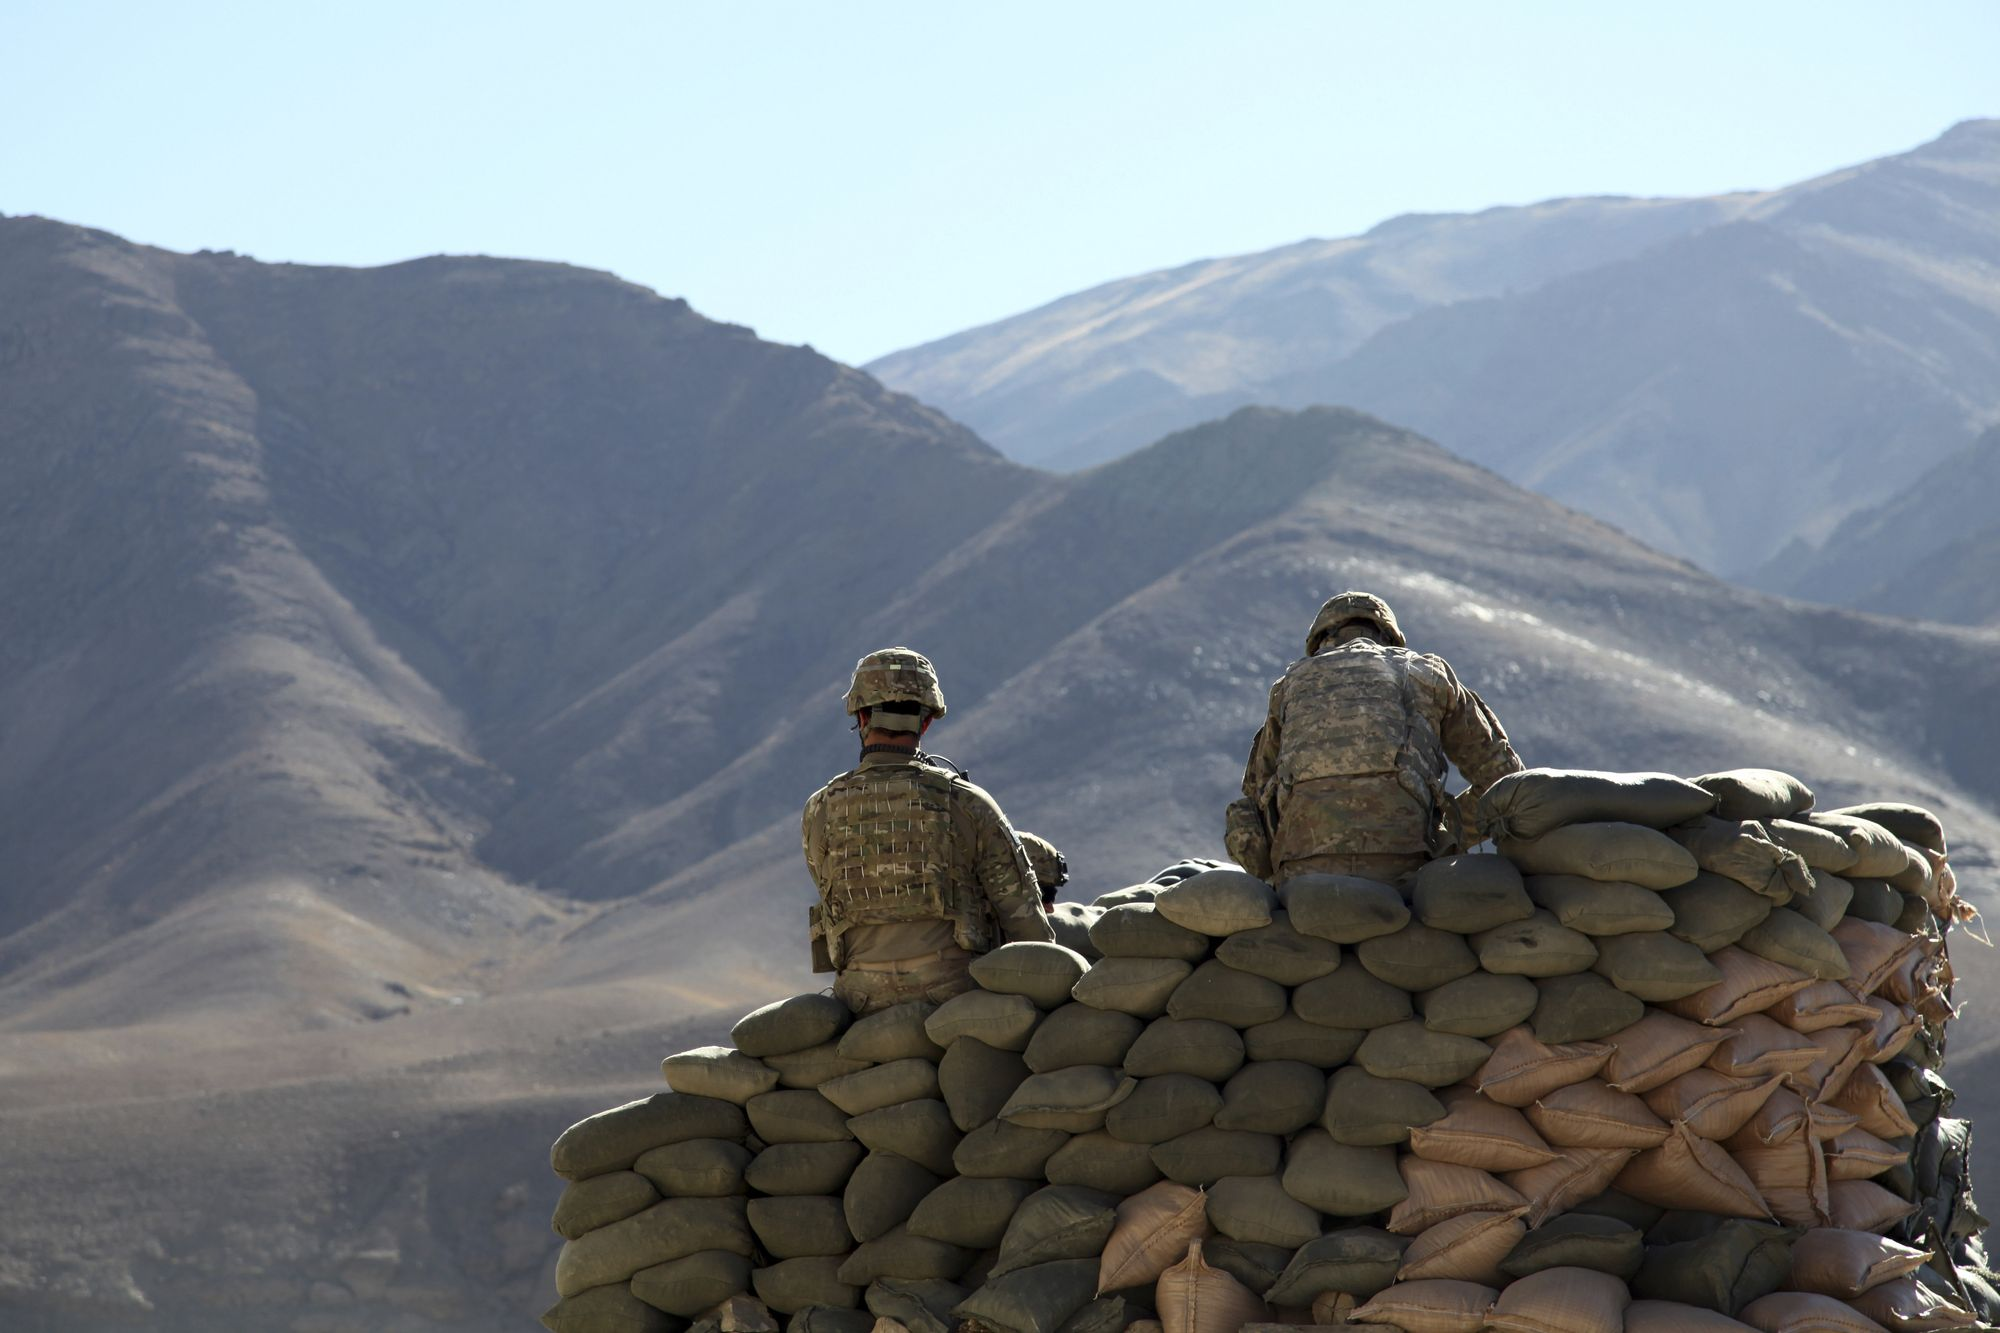 Filling Sandbags in the Military Inspired Me to Become an Entrepreneur